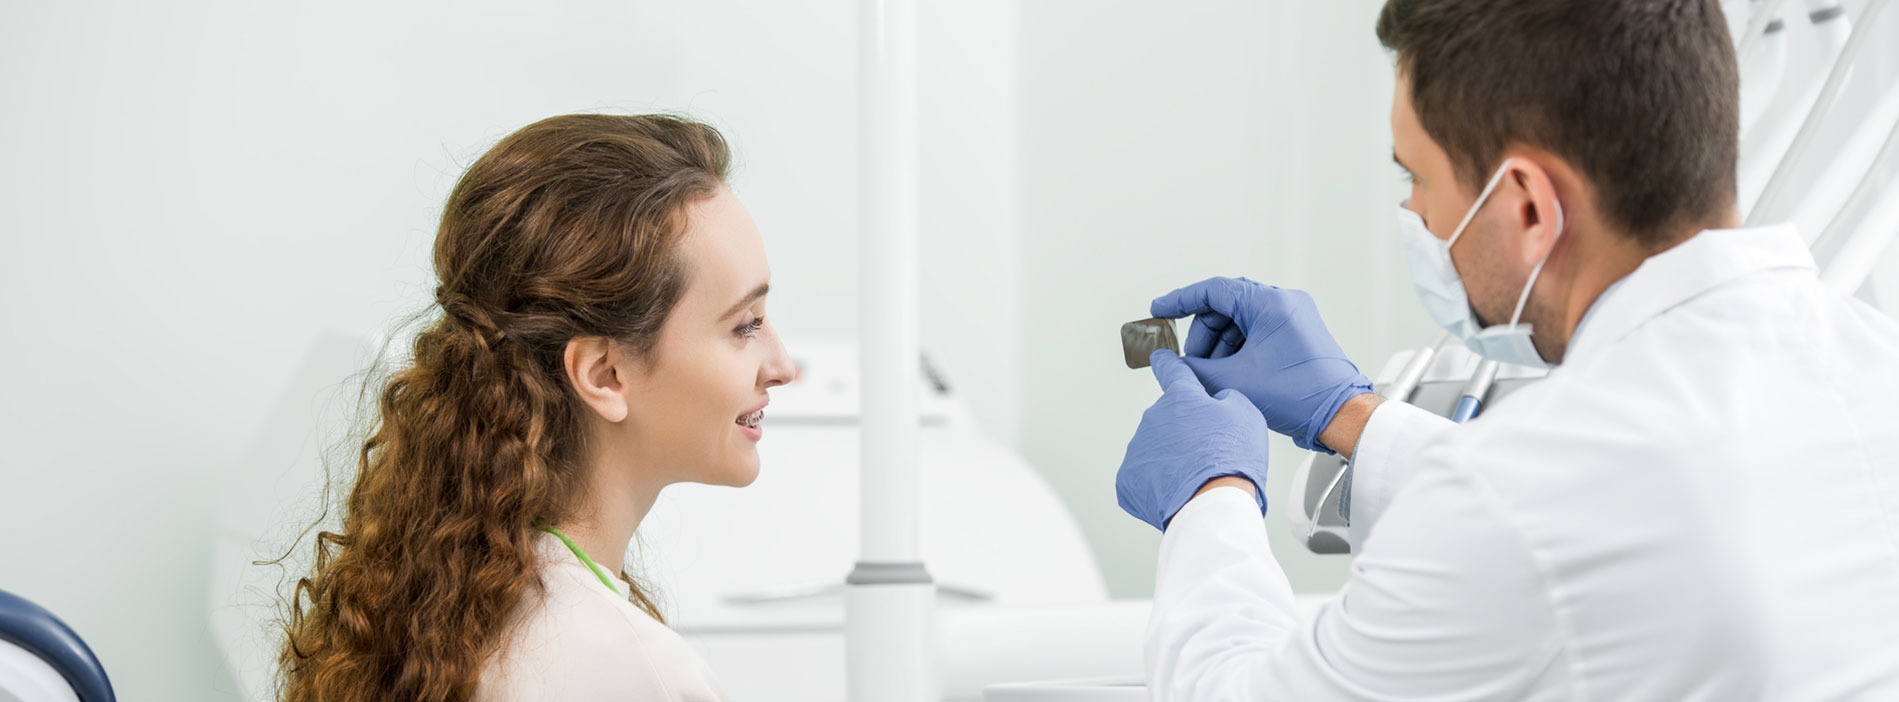 Dental showing x-ray report to patient